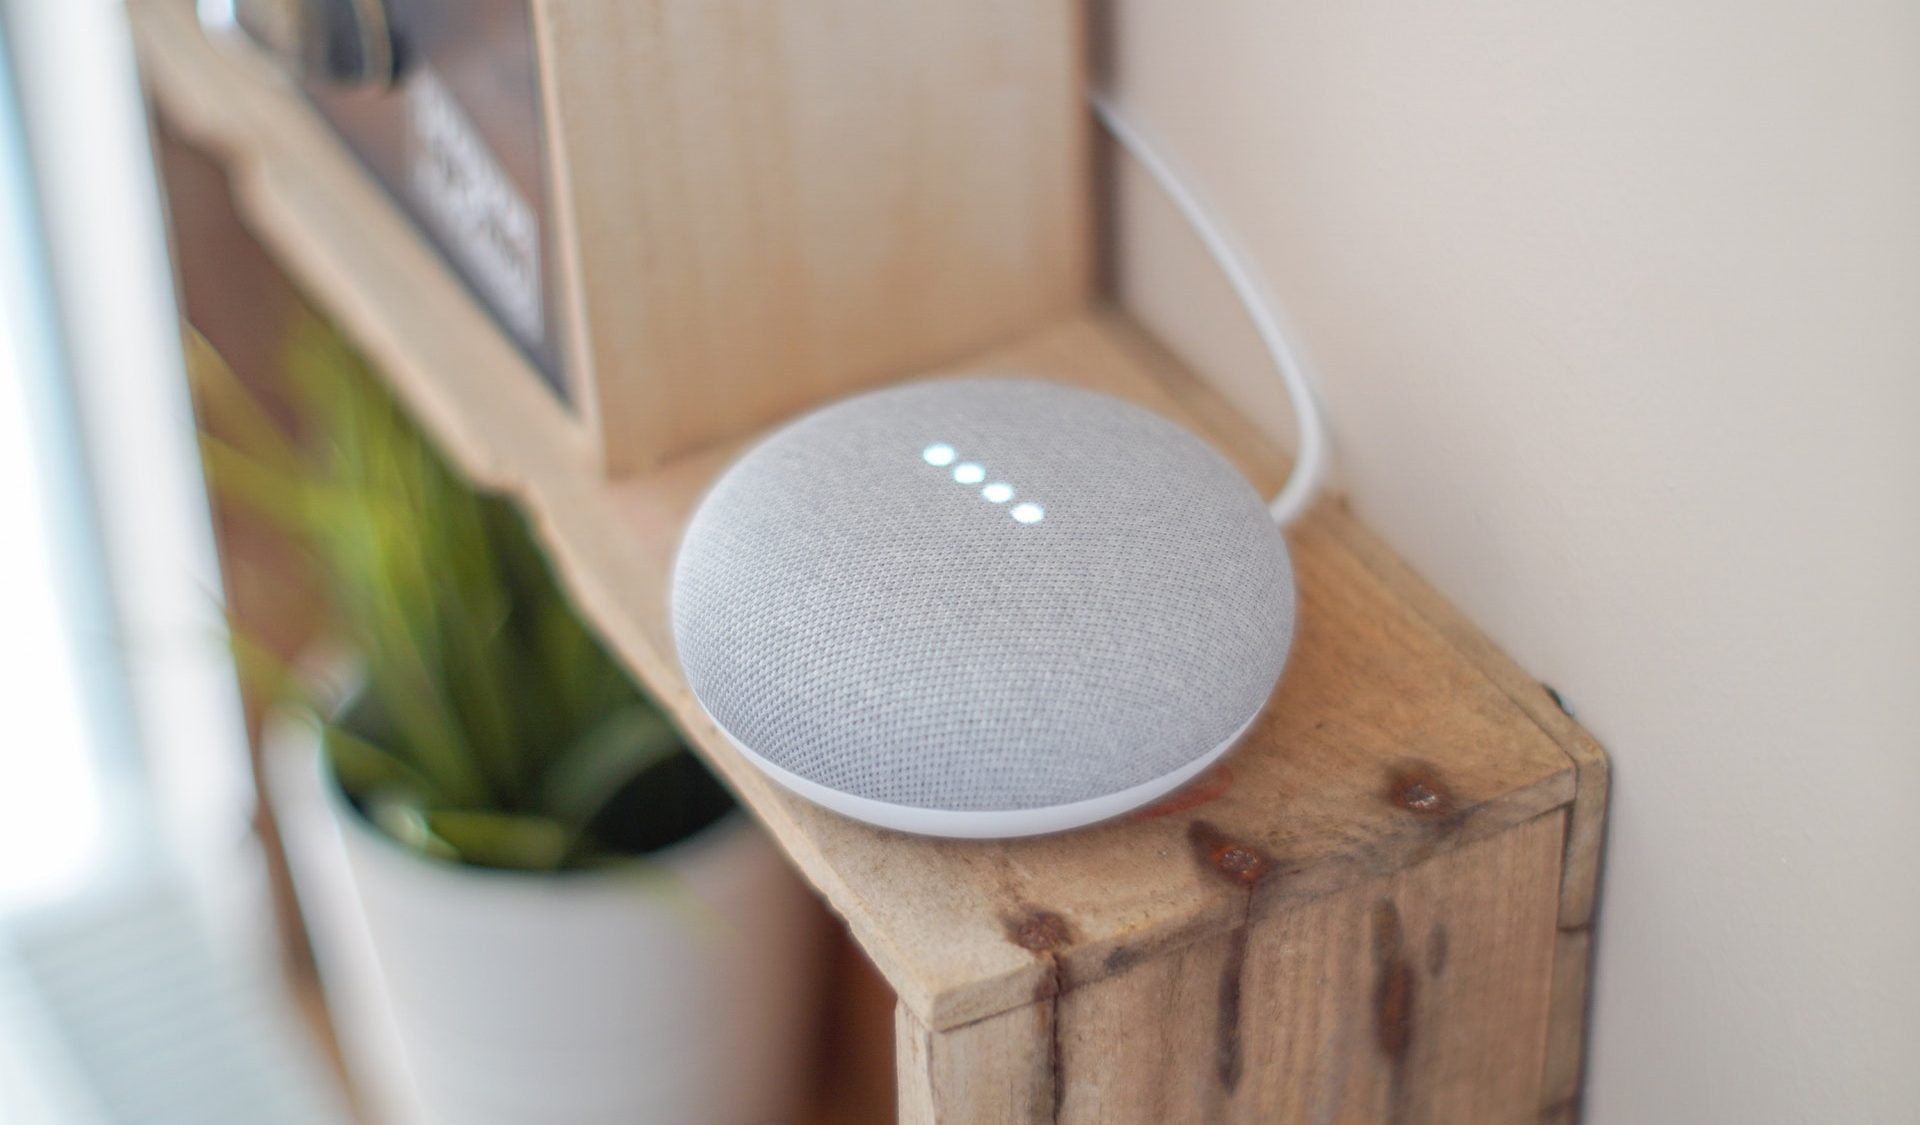 Check your Google Apps. There may be a free Google Home Mini waiting for you